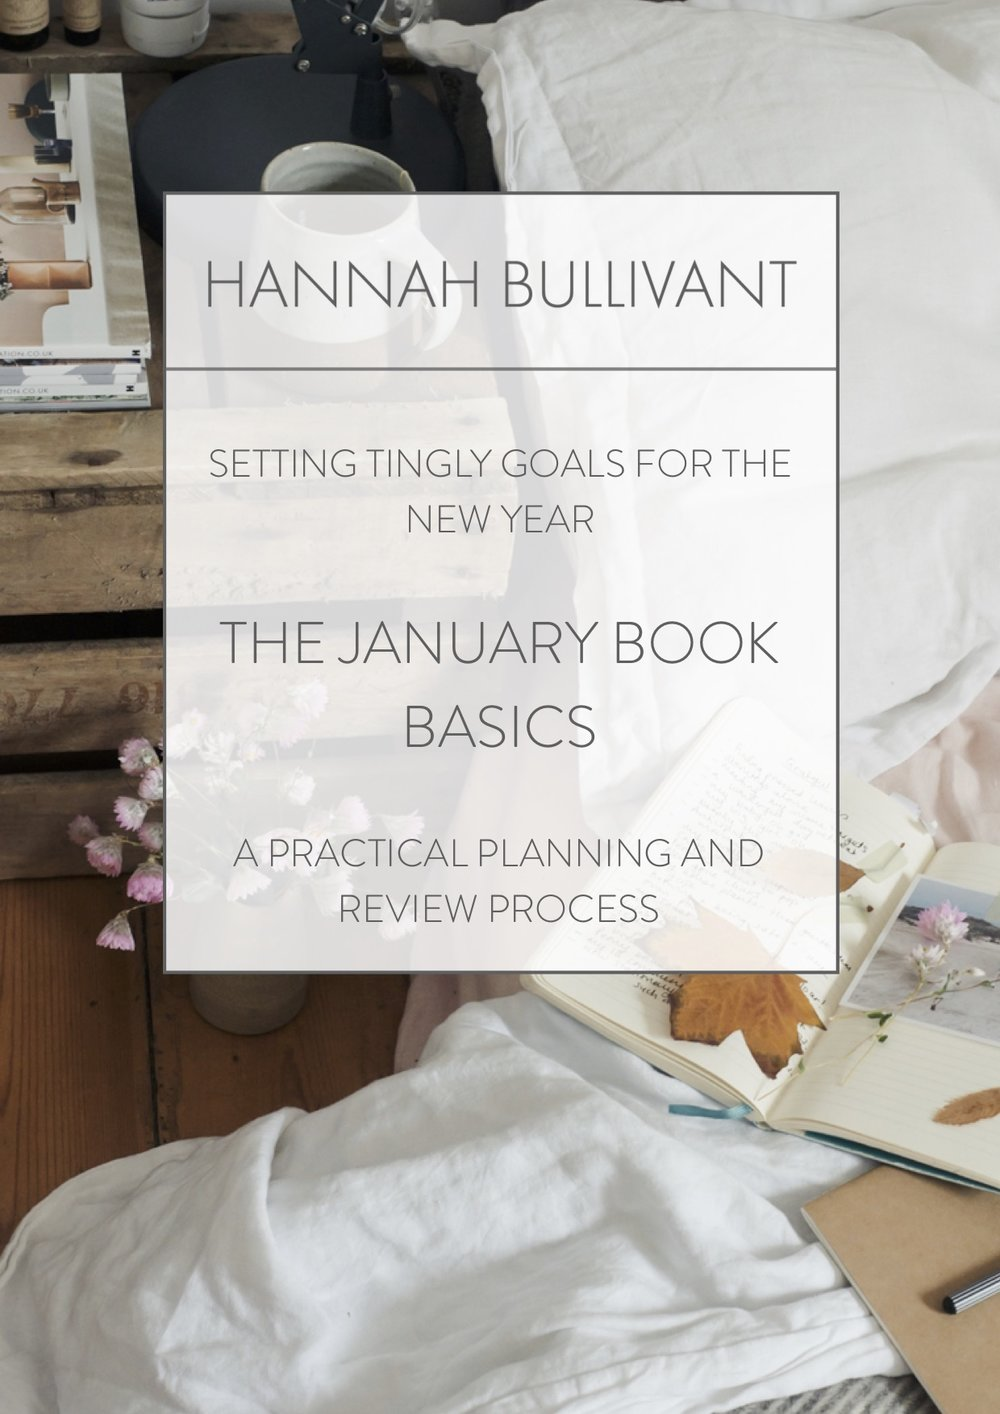 The January Book Basics | Hannahbullivant.com